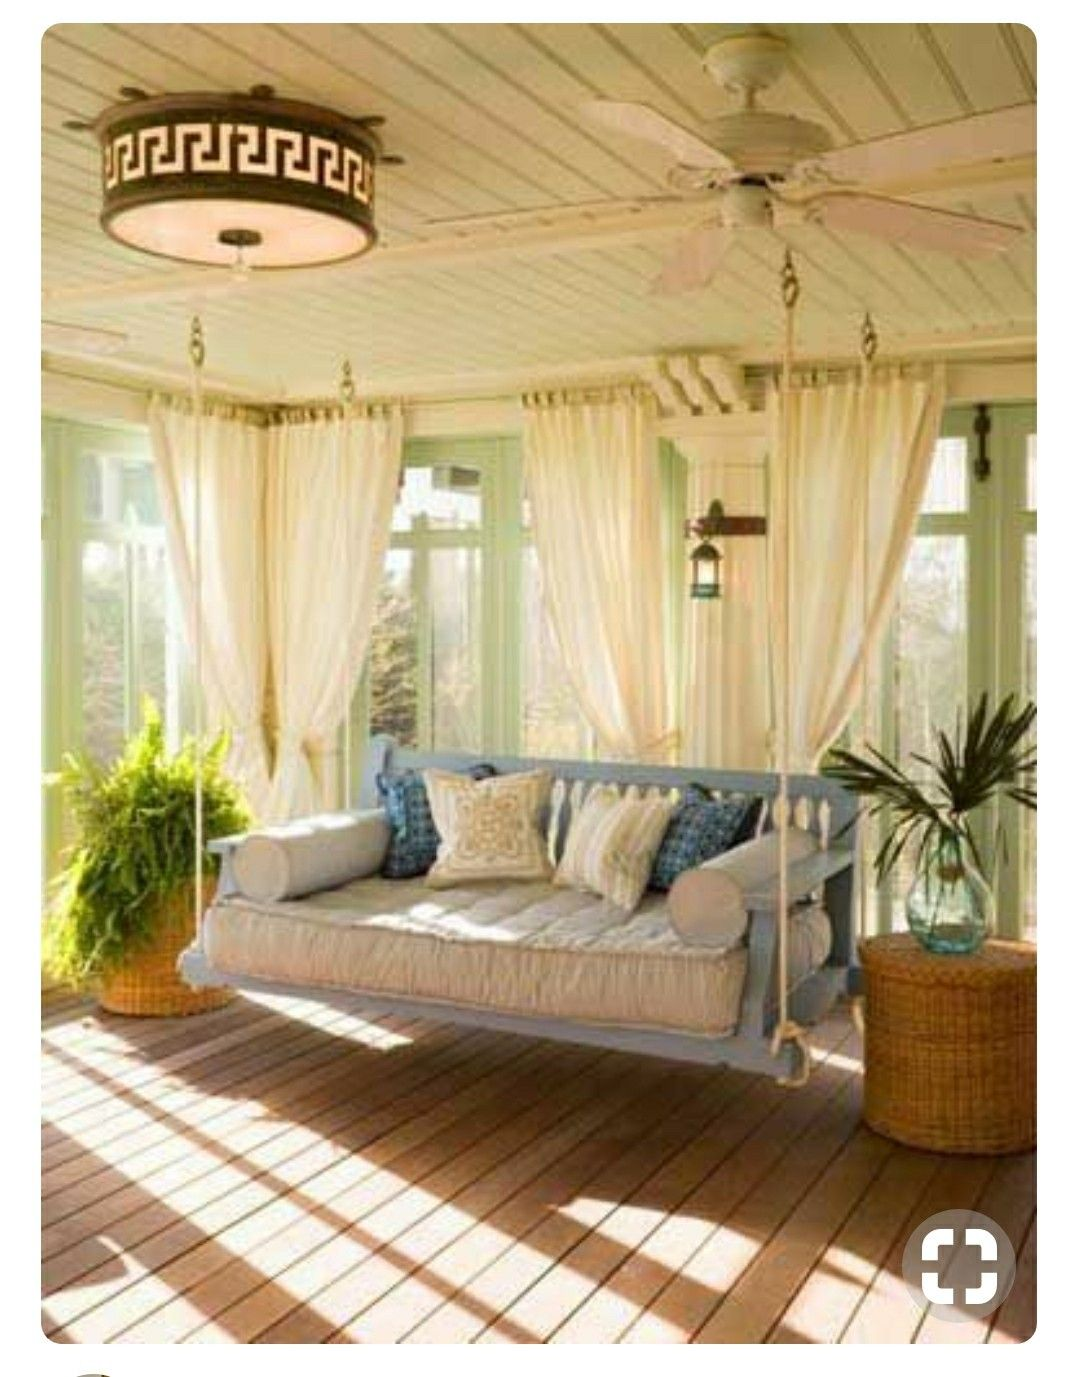 Bed and window placement  window covering for sunroom  sunroom  pinterest  sunroom and window